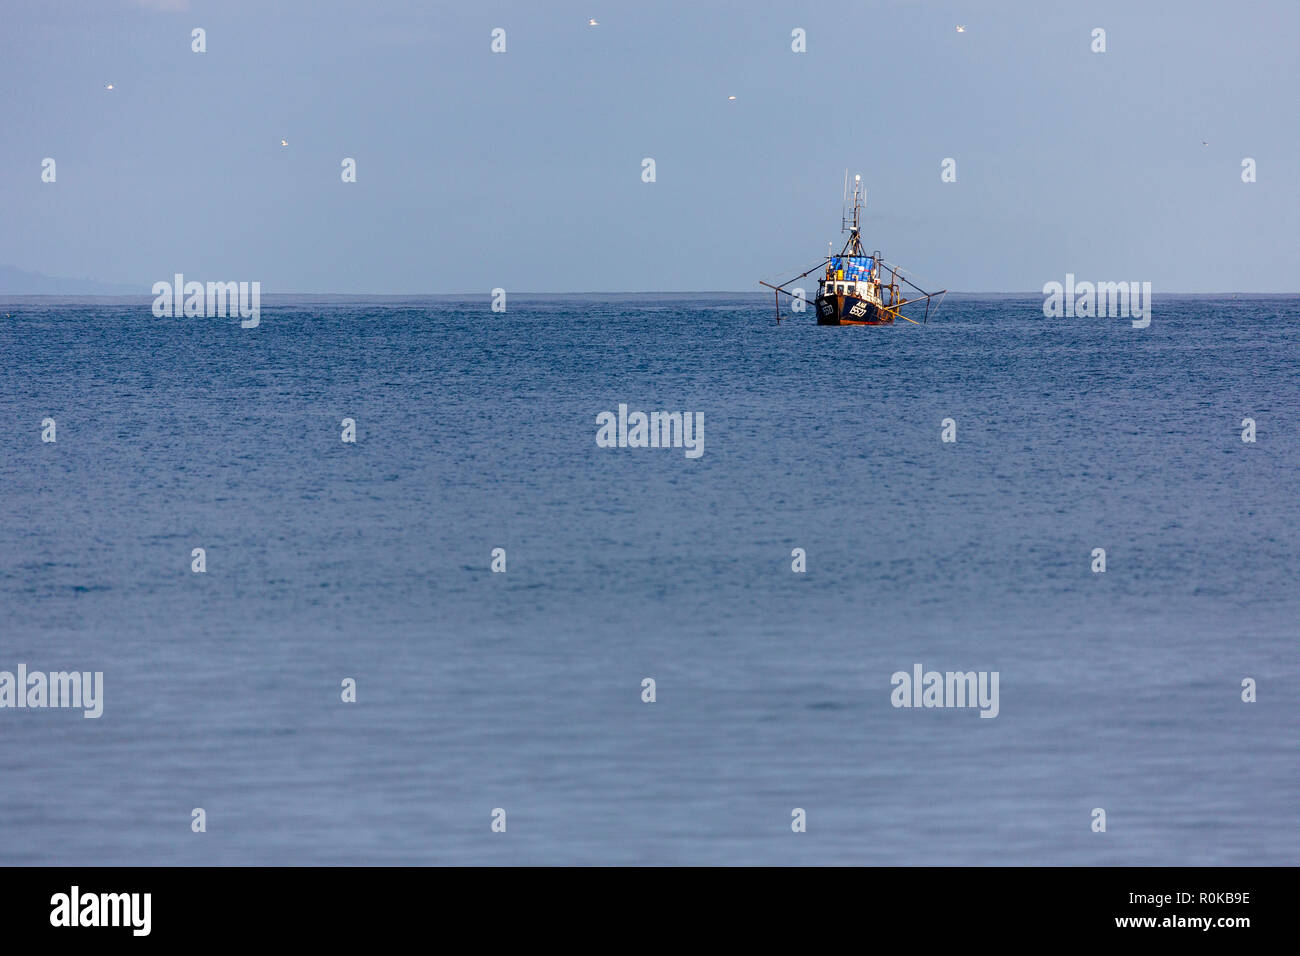 Fisherboat on the Hauraki Gulf, New Zealand - Stock Image